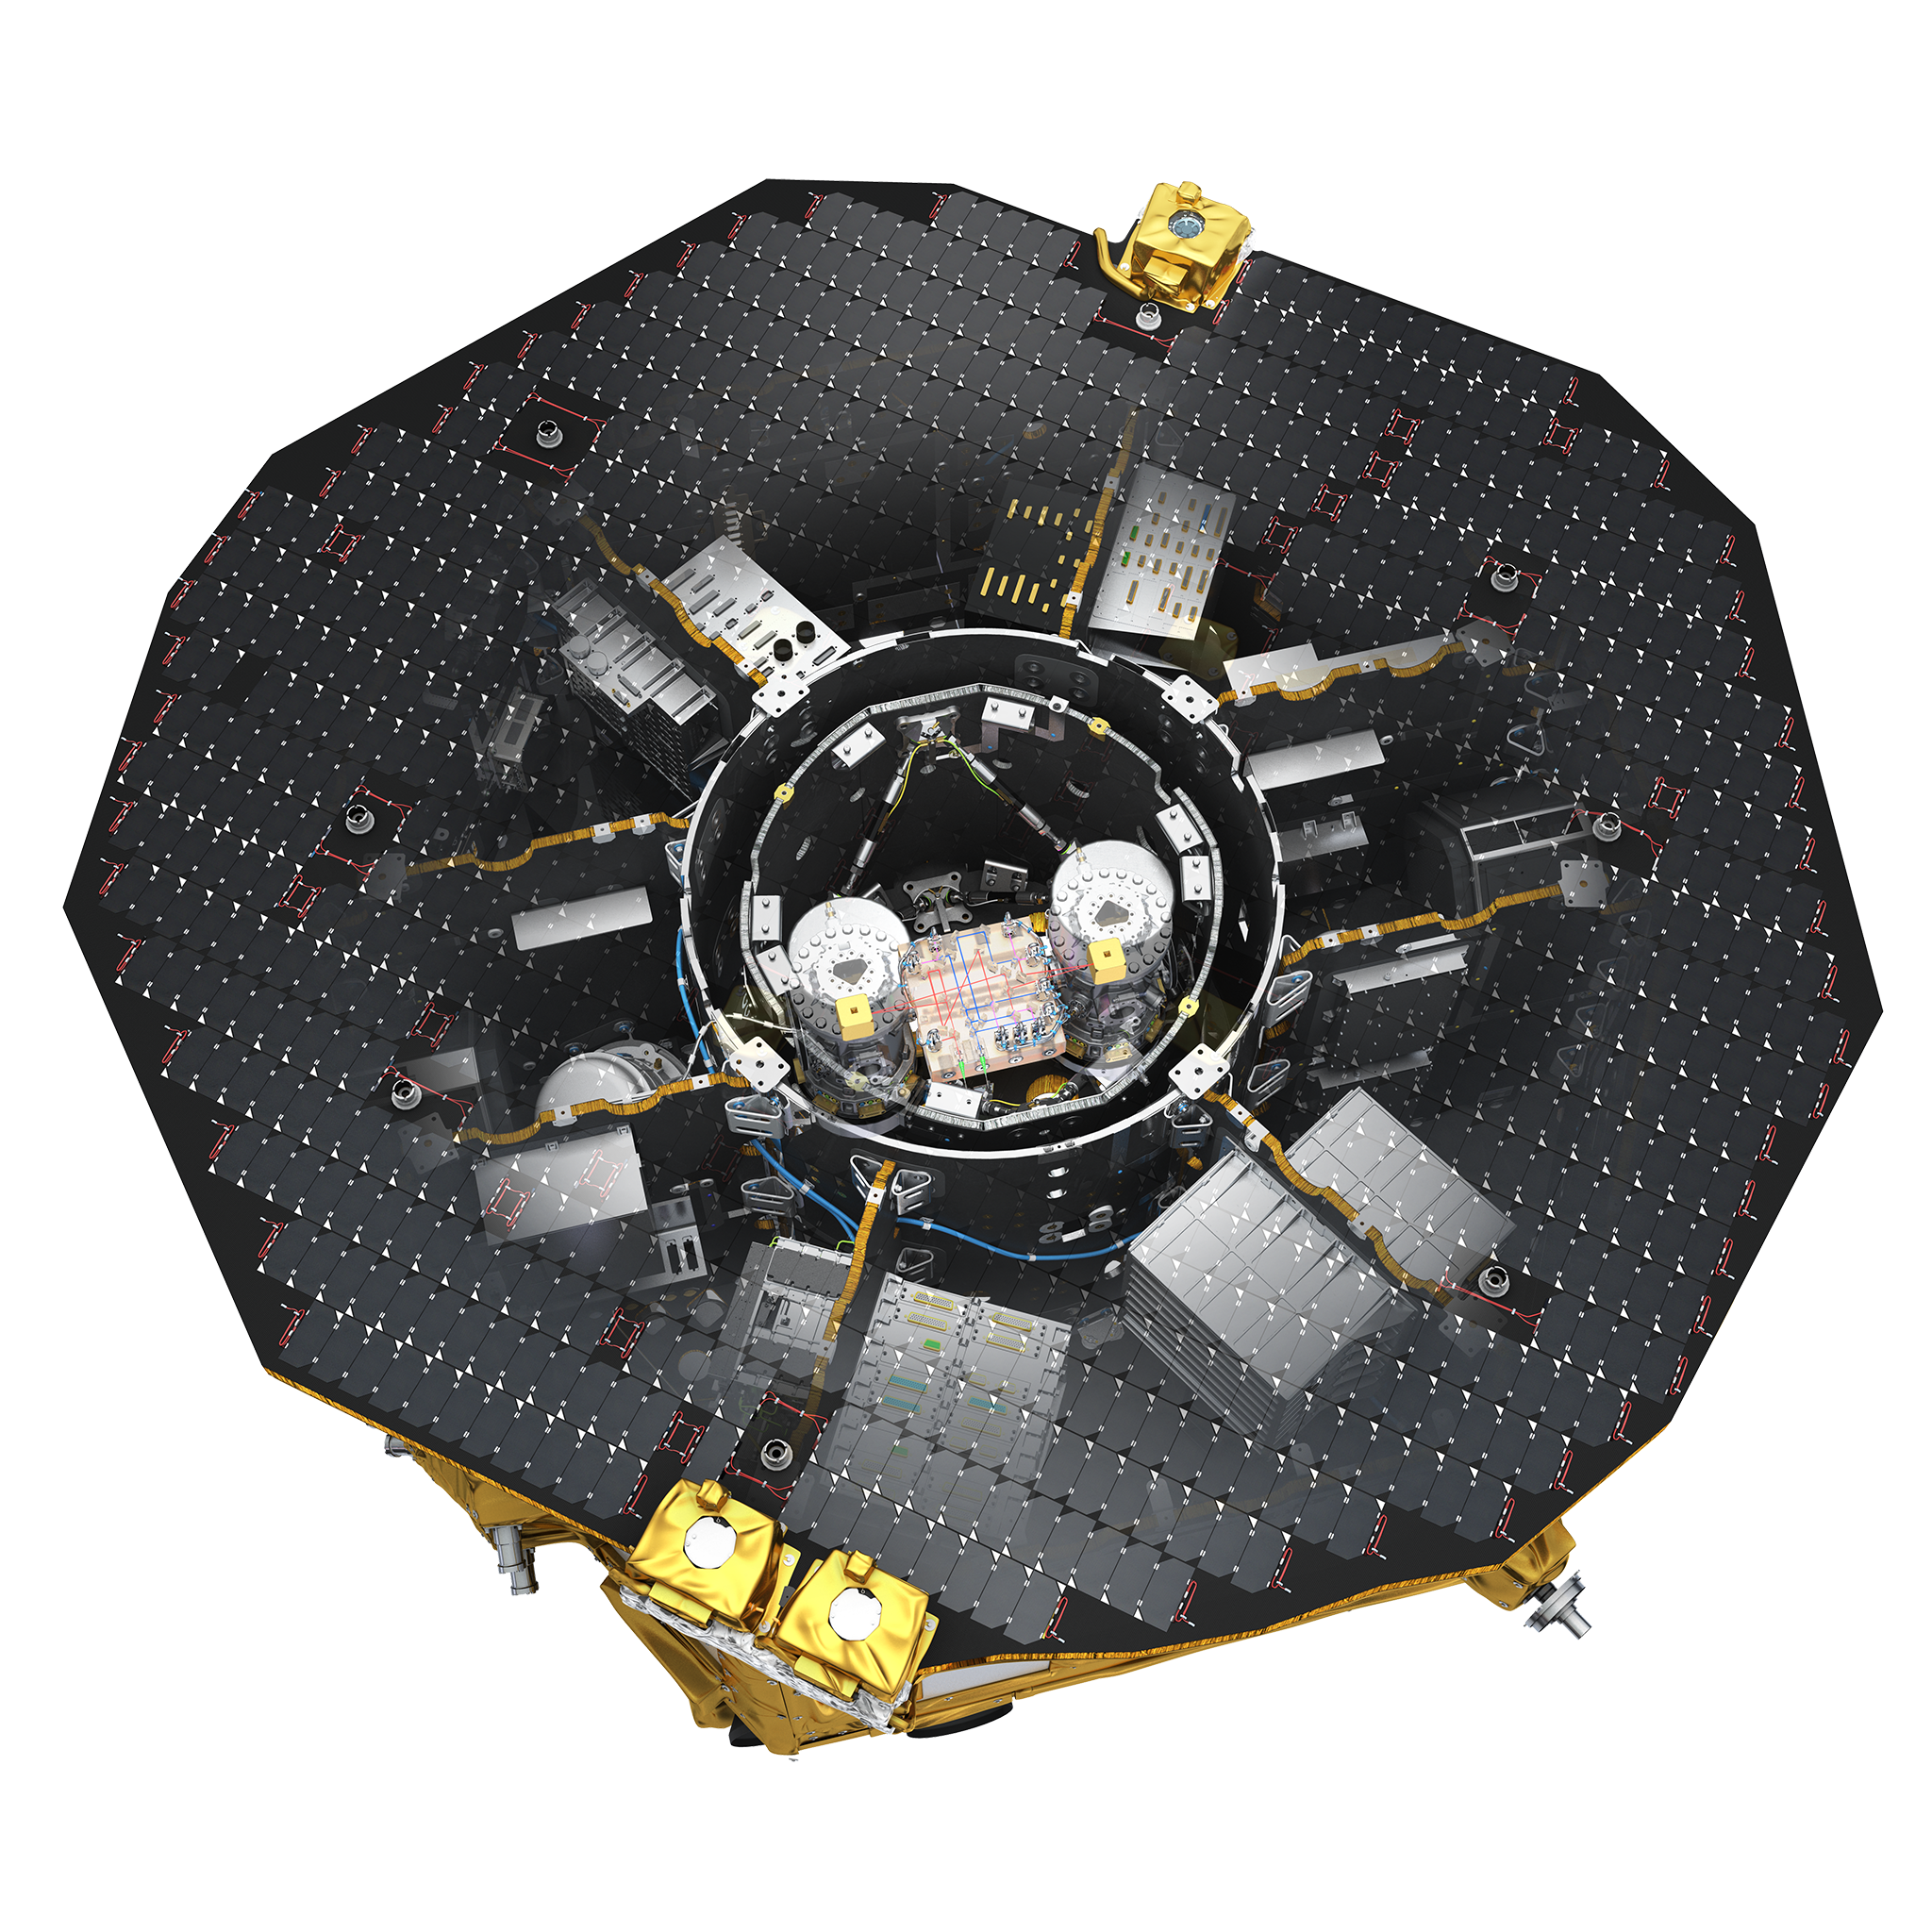 This artist's impression shows the interior layout of LISA Pathfinder's science module. The central circle is a cylindrical capsule that contains many of the spacecraft's key payload components — a vacuum enclosure that houses two test masses in their electrode casings, and the optical bench interferometer between them. Scientists will use this interferometer to monitor and measure the masses as they move in a near-perfect gravitational free-fall.